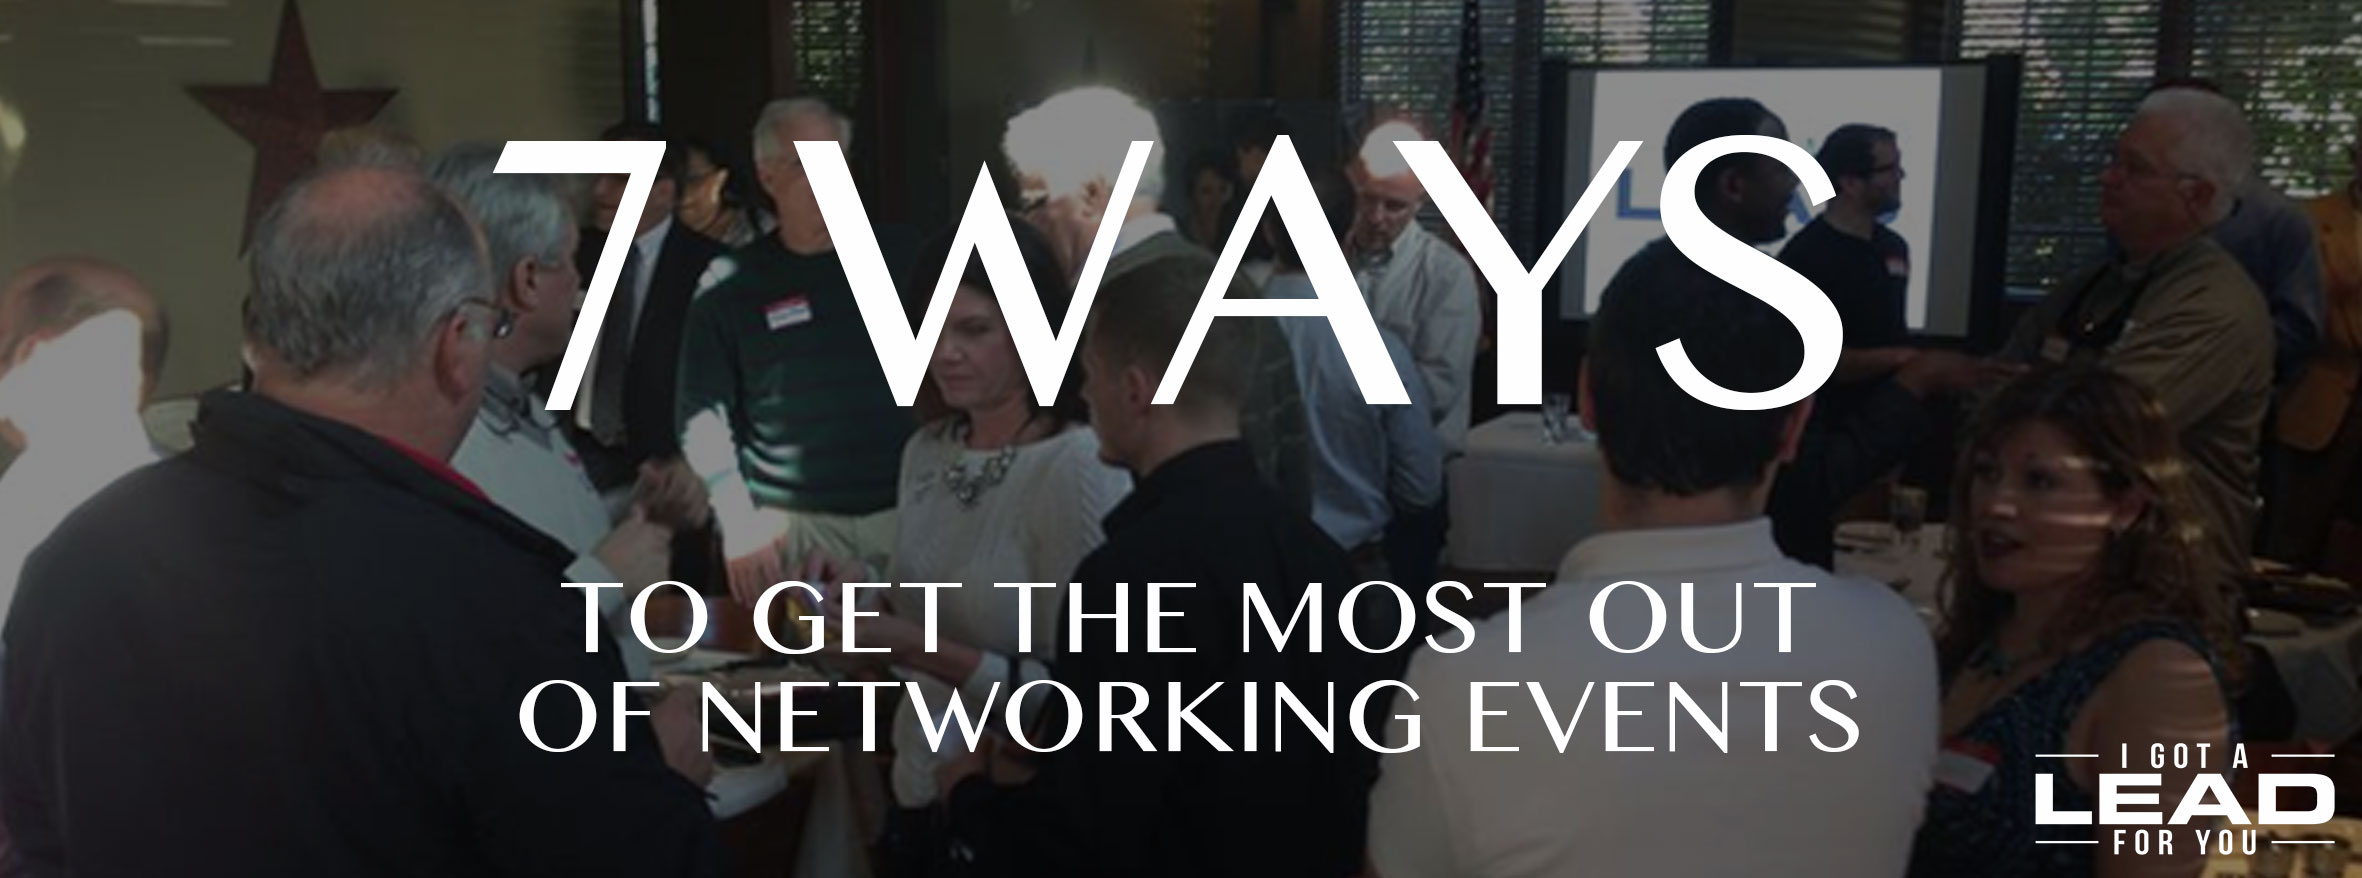 7 Ways to Get the Most Out of Networking Events